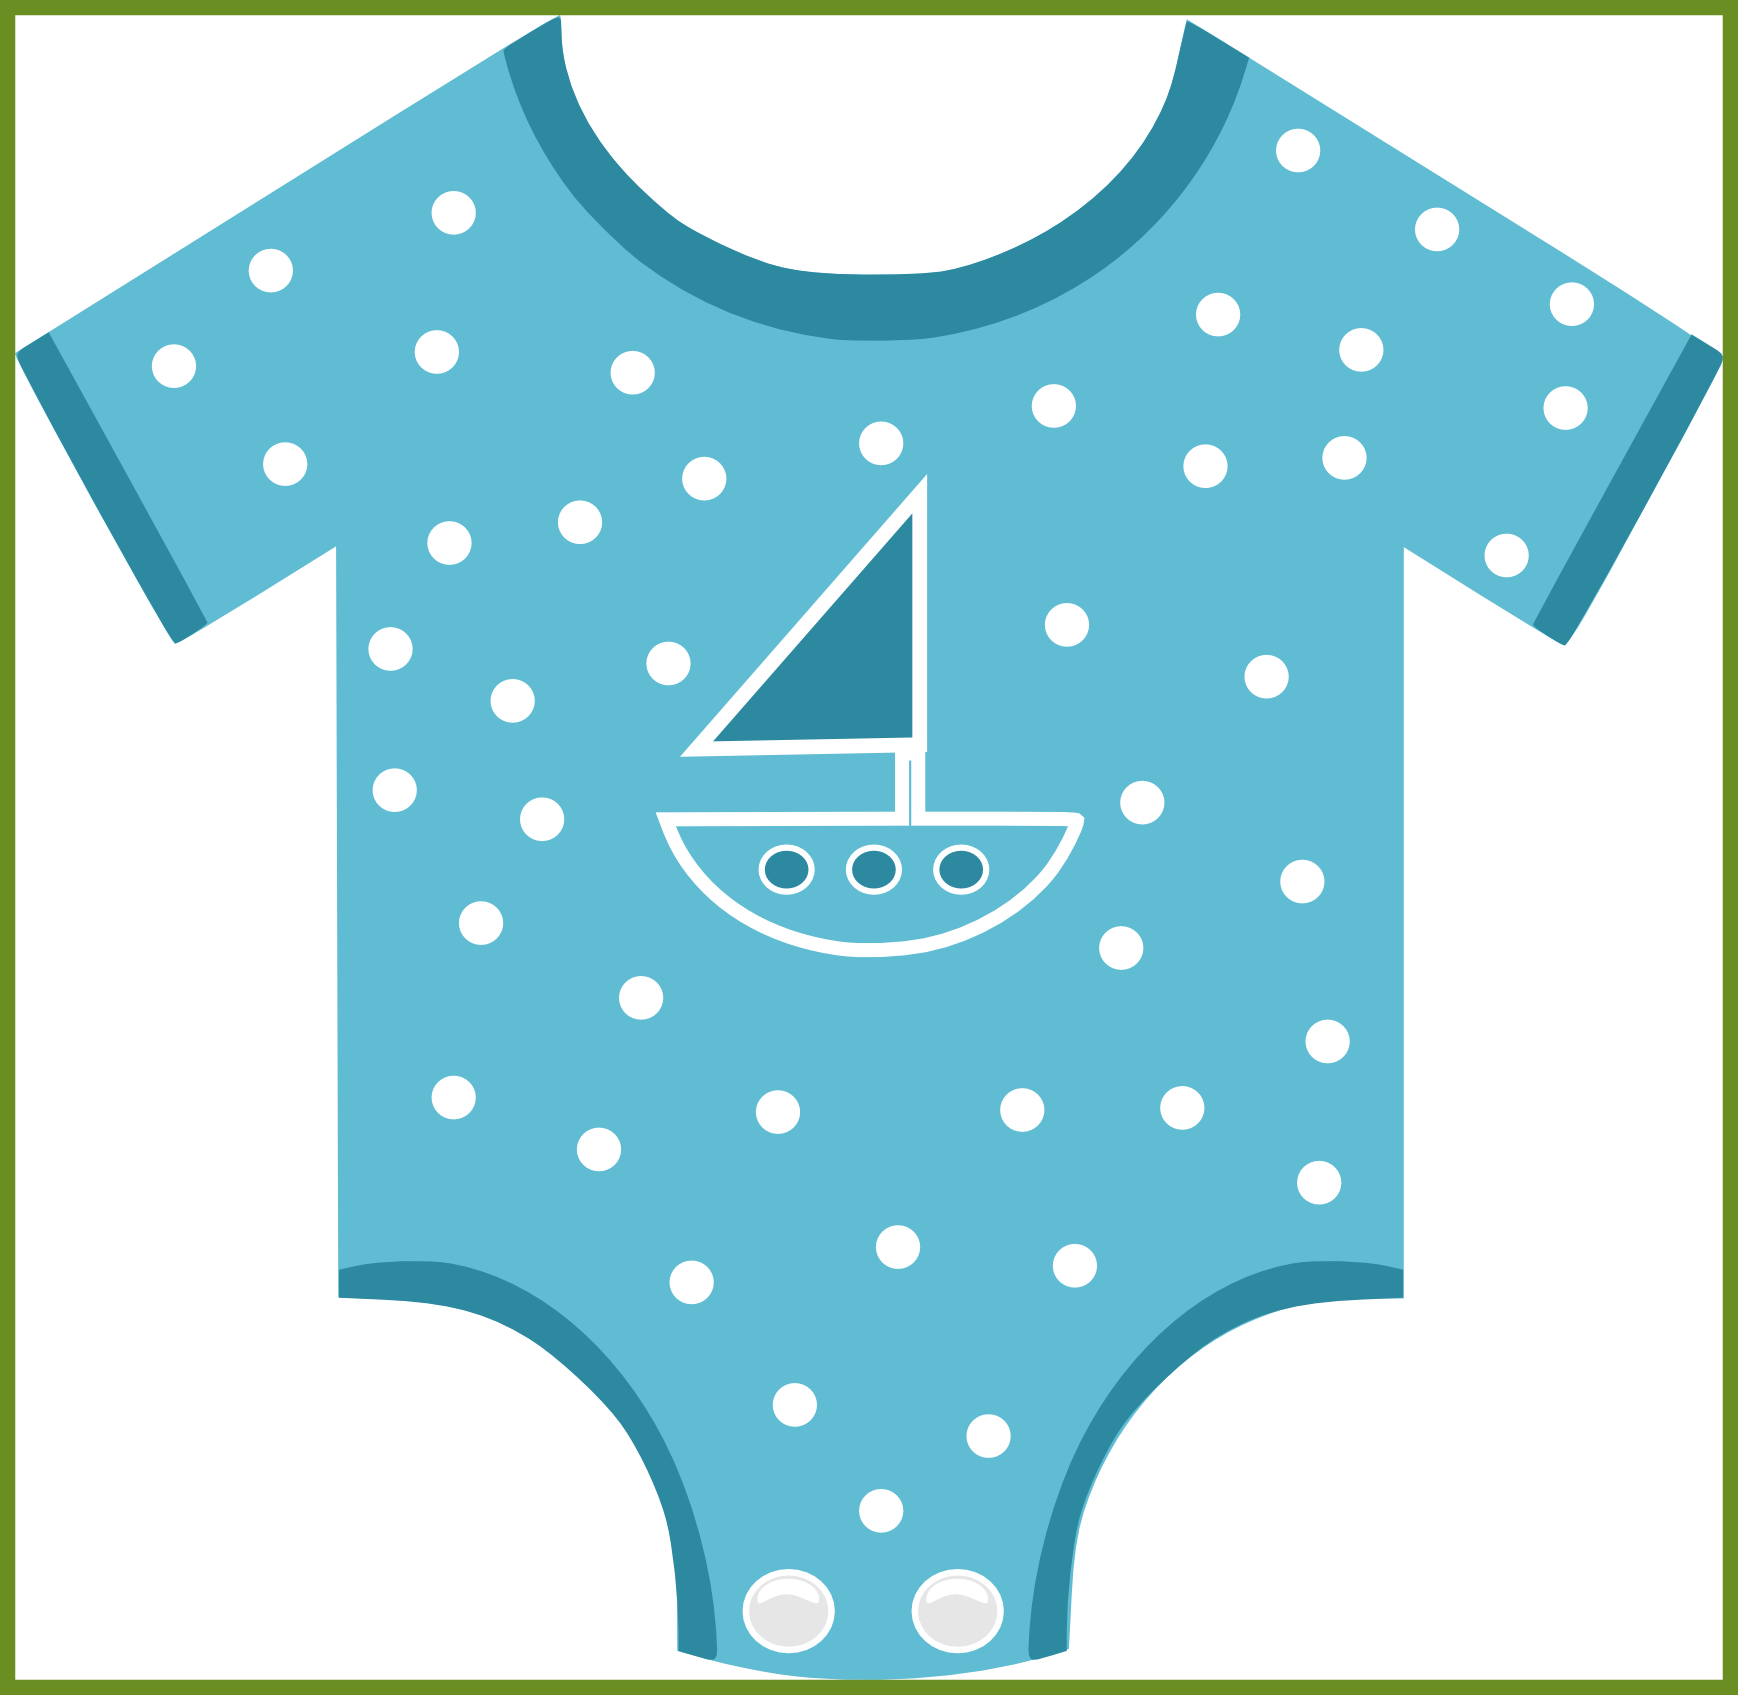 Download Png Download Baby Clipart Transparent Background Transparent Baby Clothes Png Full Size Png Image Pngkit